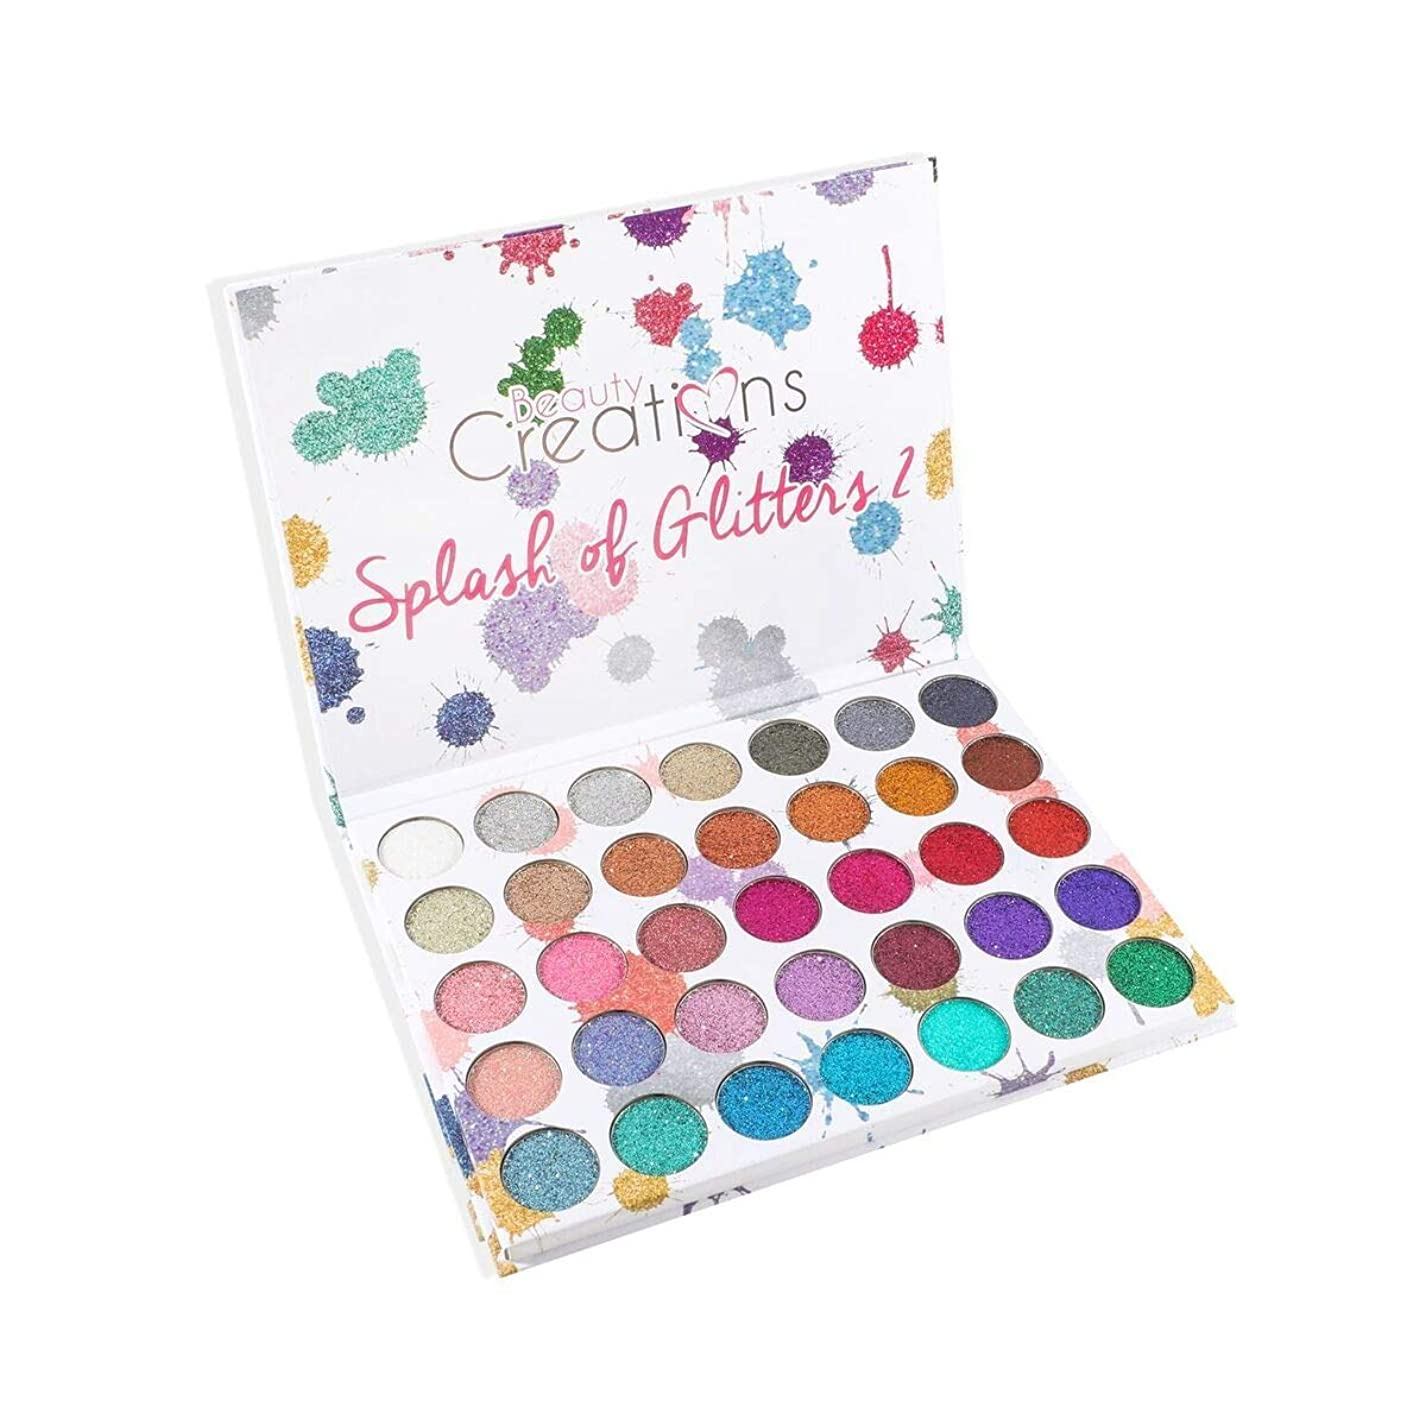 ギネスモード穏やかな(3 Pack) BEAUTY CREATIONS Splash of Glitters 35 Color Palette 2 (並行輸入品)